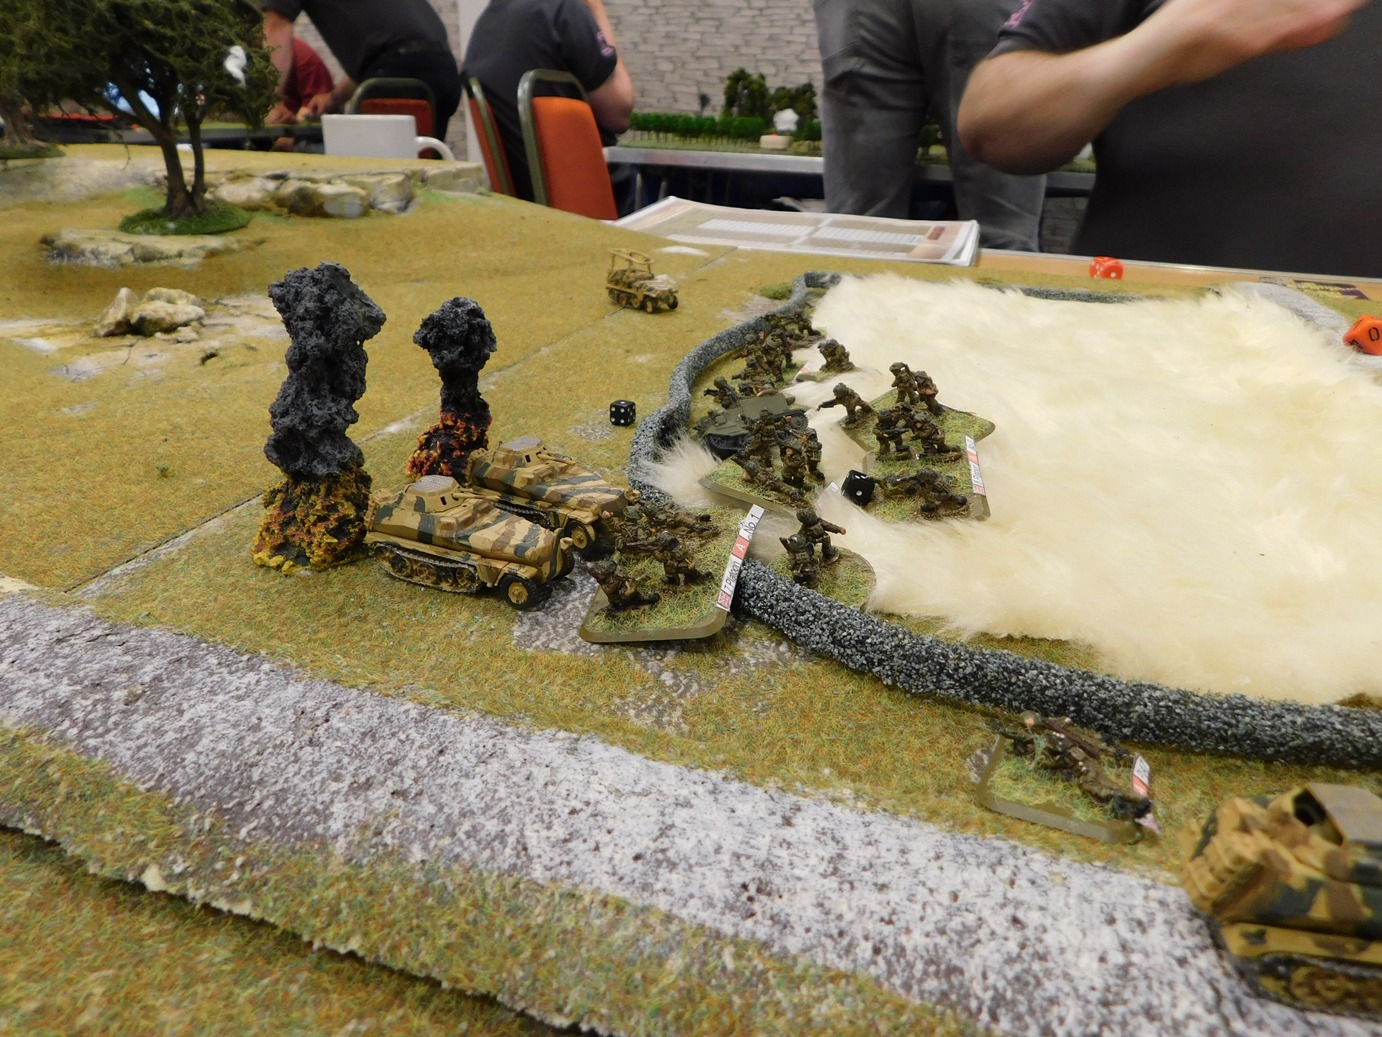 Wall re-taken, two half-tracks down, PIAT team in the right foreground about to turn round and deal with a third